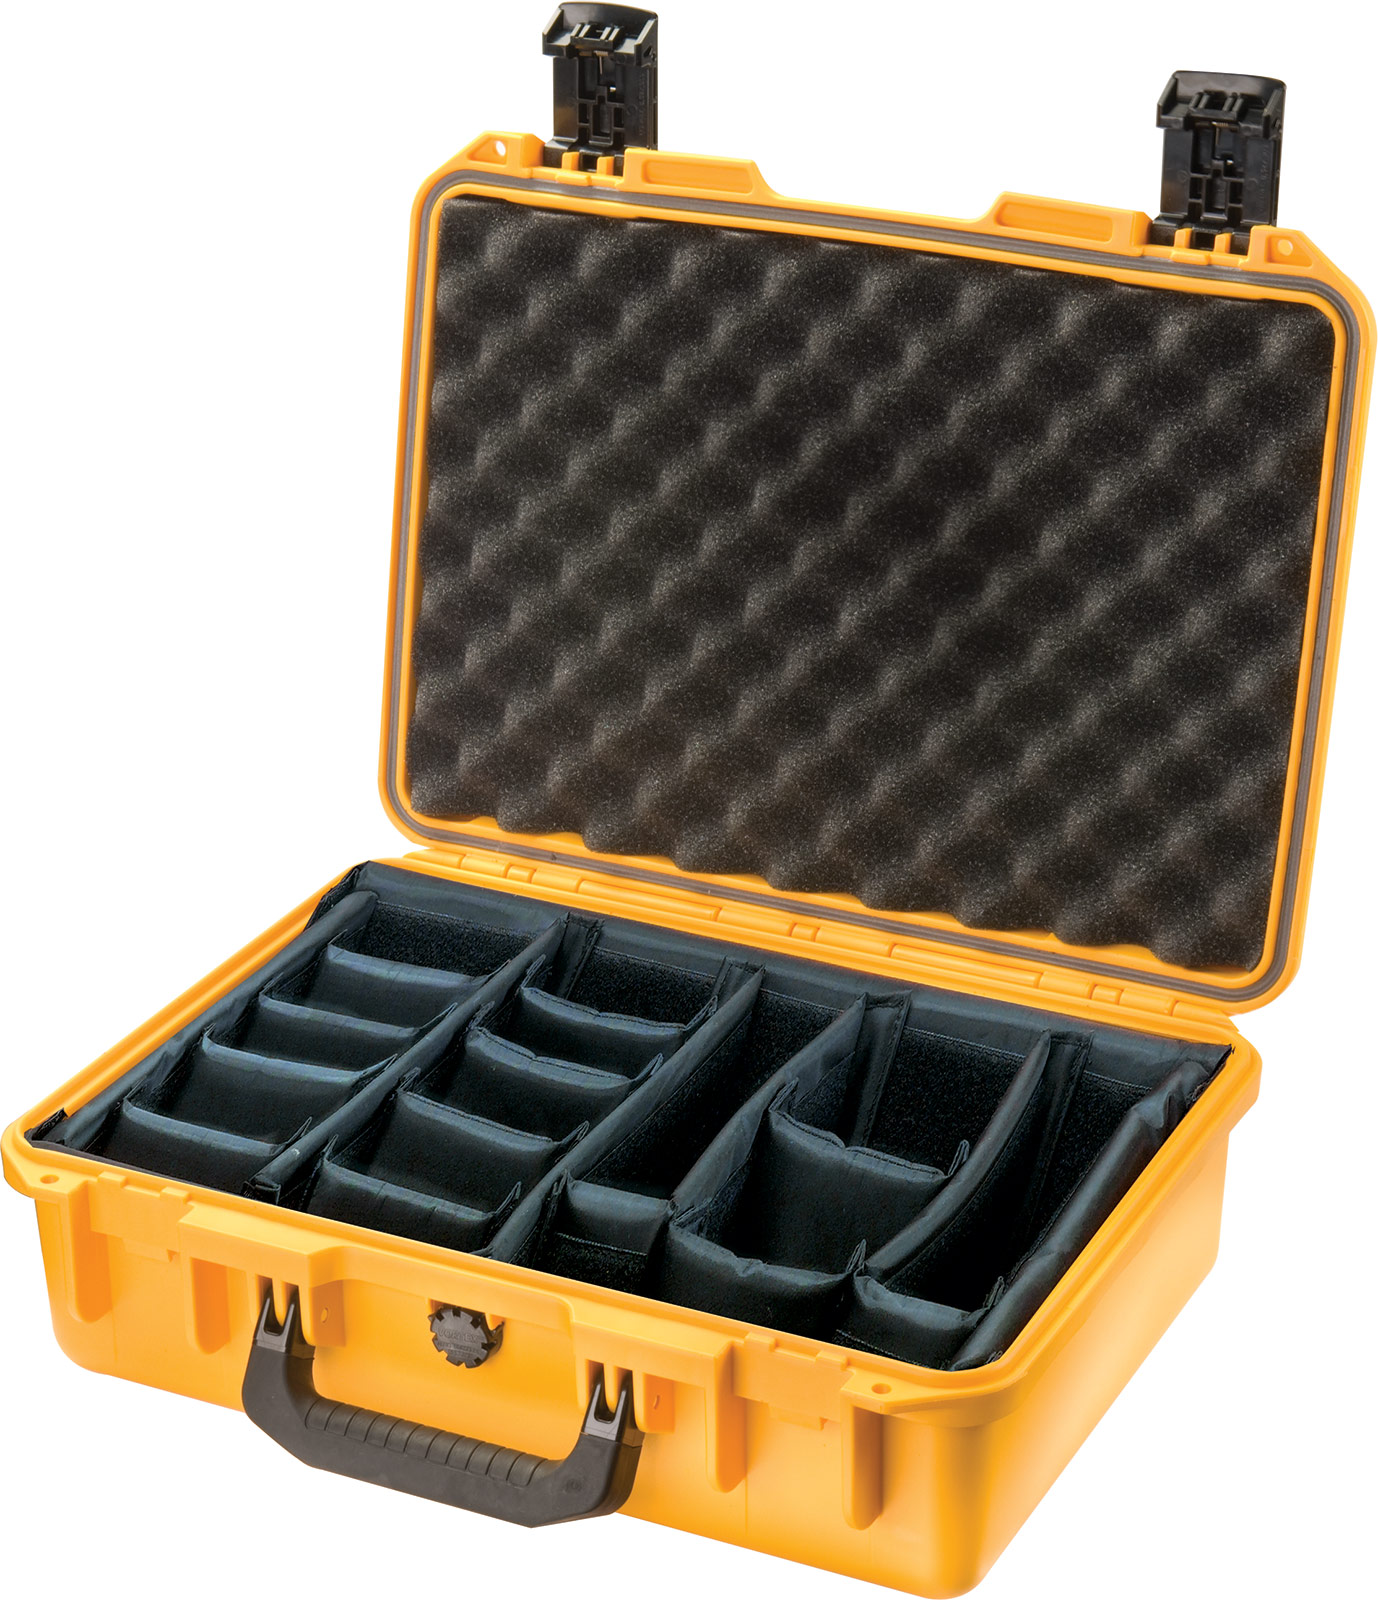 pelican im2300 watertight camera lens case